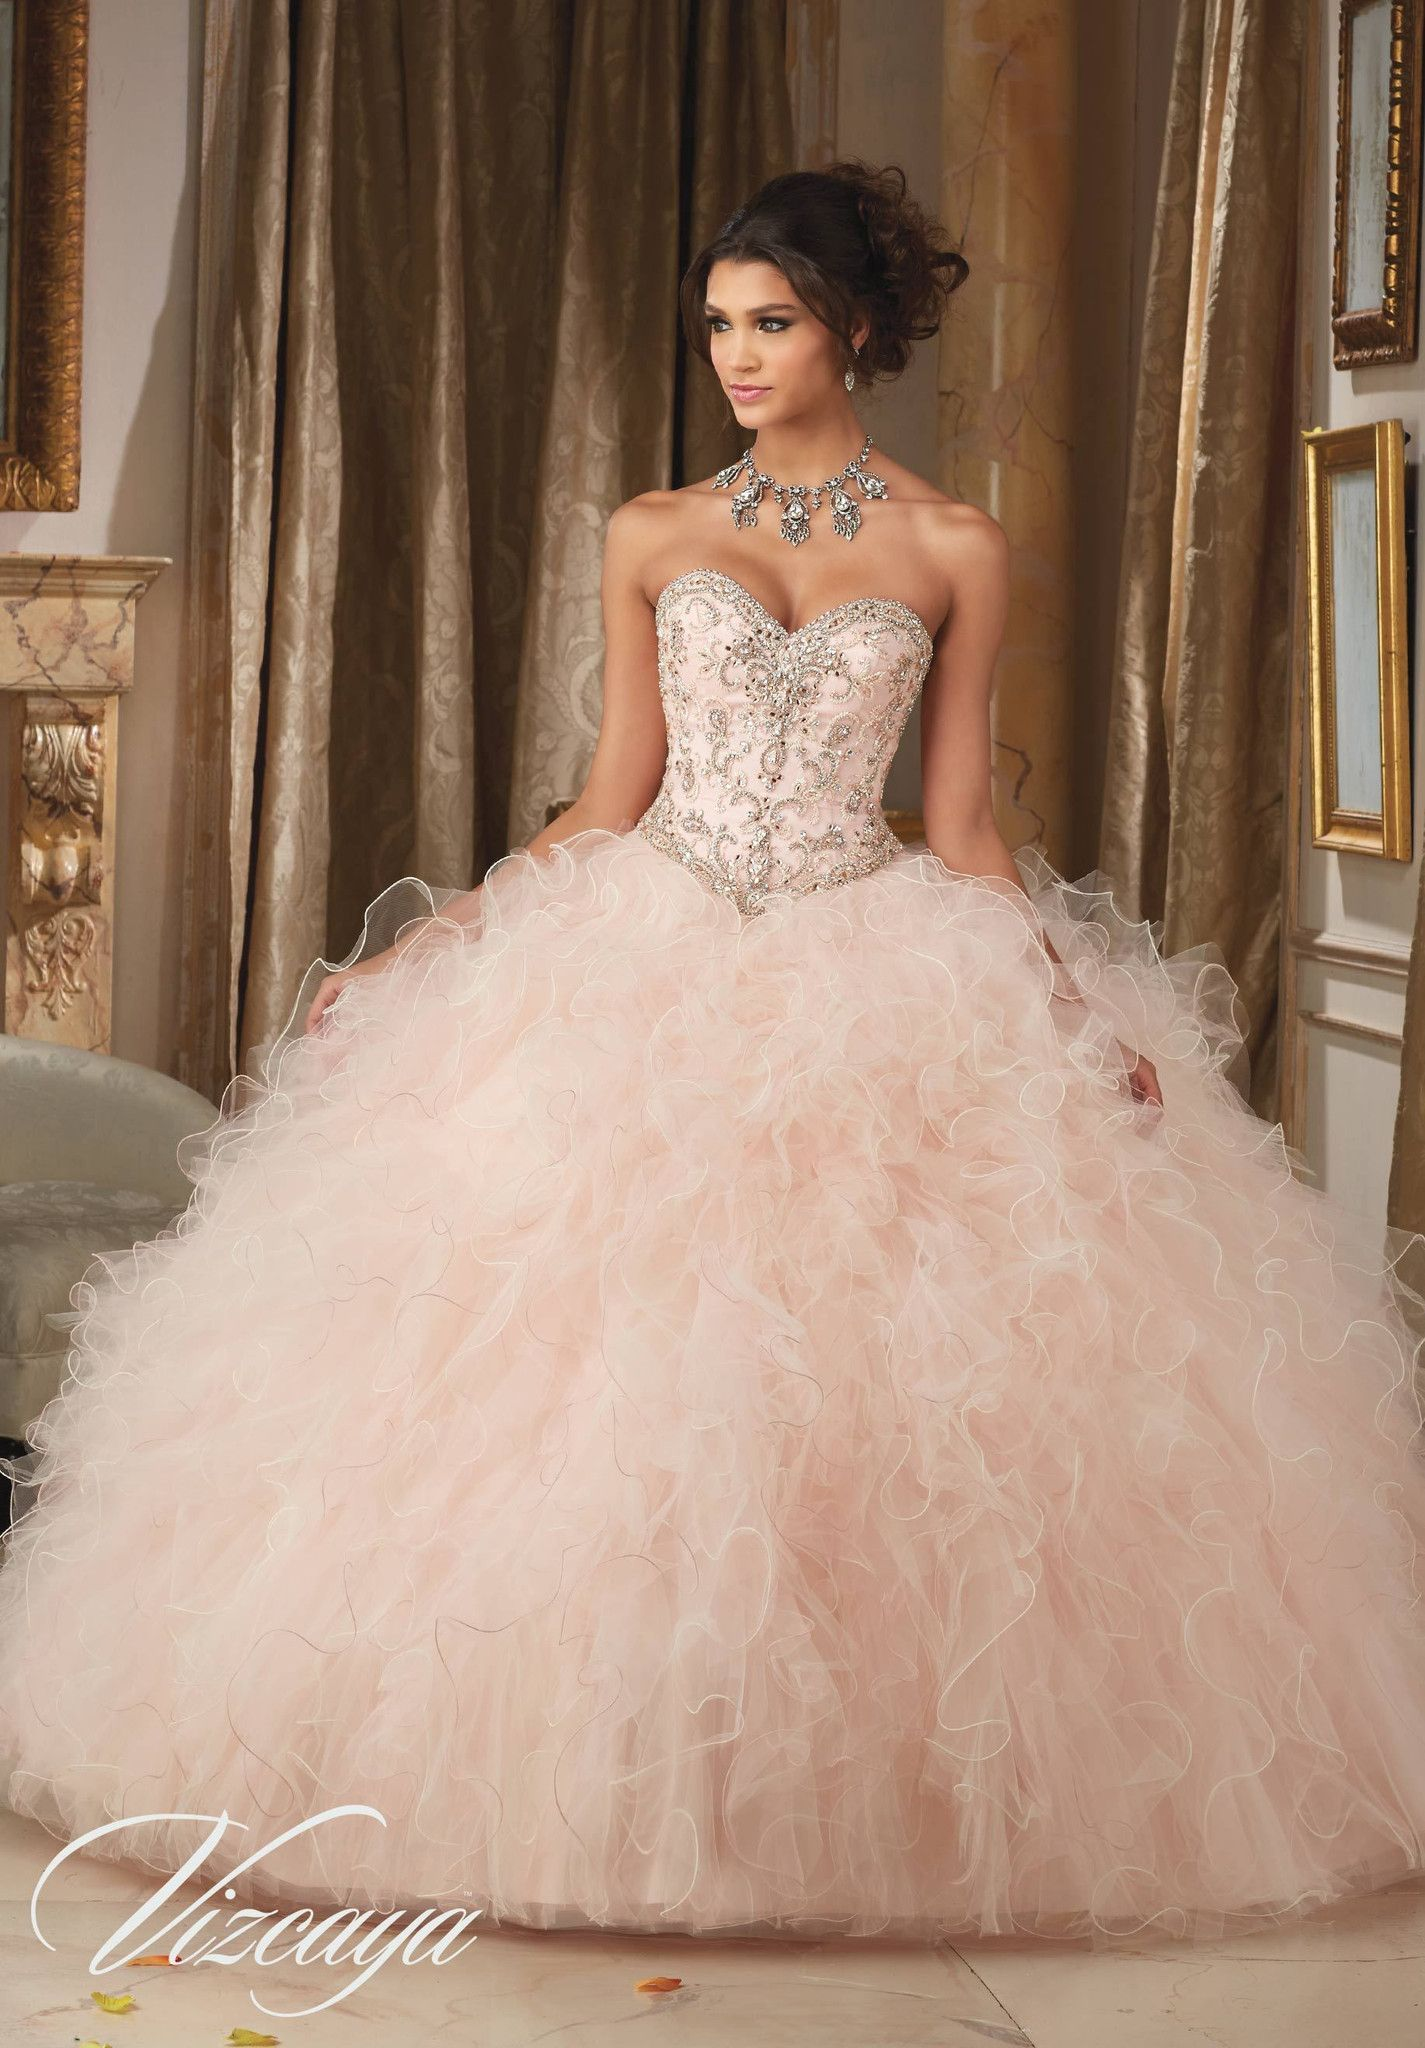 Strapless Ruffled Quinceanera Dress by